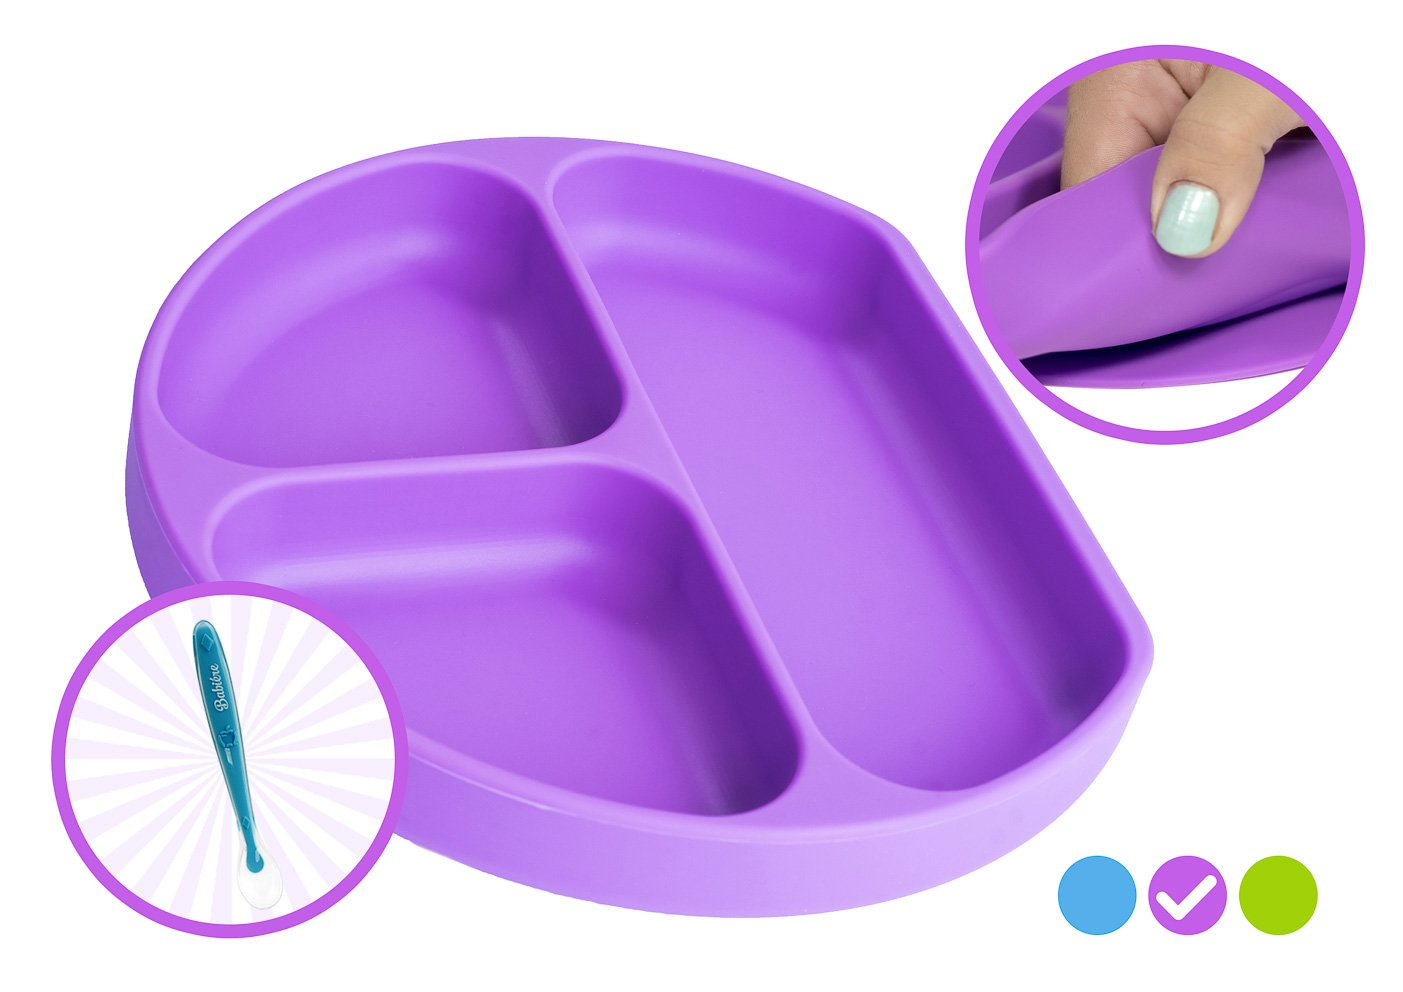 Babiere Silicone Toddler Plate – Powerful Suction Base Stays Put to Highchair – Grip Dish with Divided Sections – BPA & Toxin Free, Microwave & Freezer Safe – Free Silicone Baby Spoon – Purple